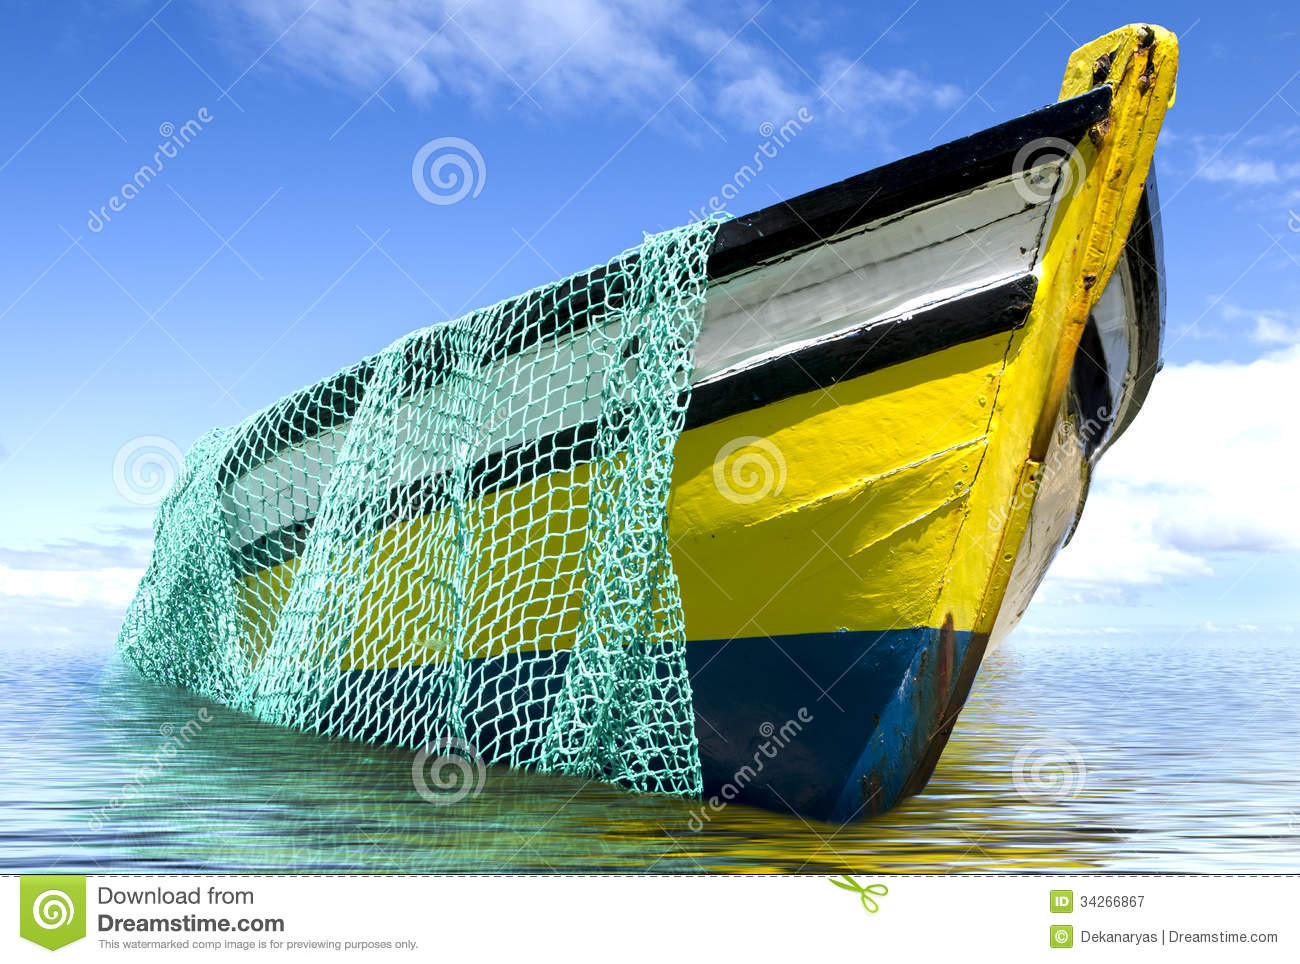 The Old Fishing Boat Royalty Free Stock Photography - Image: 34266867